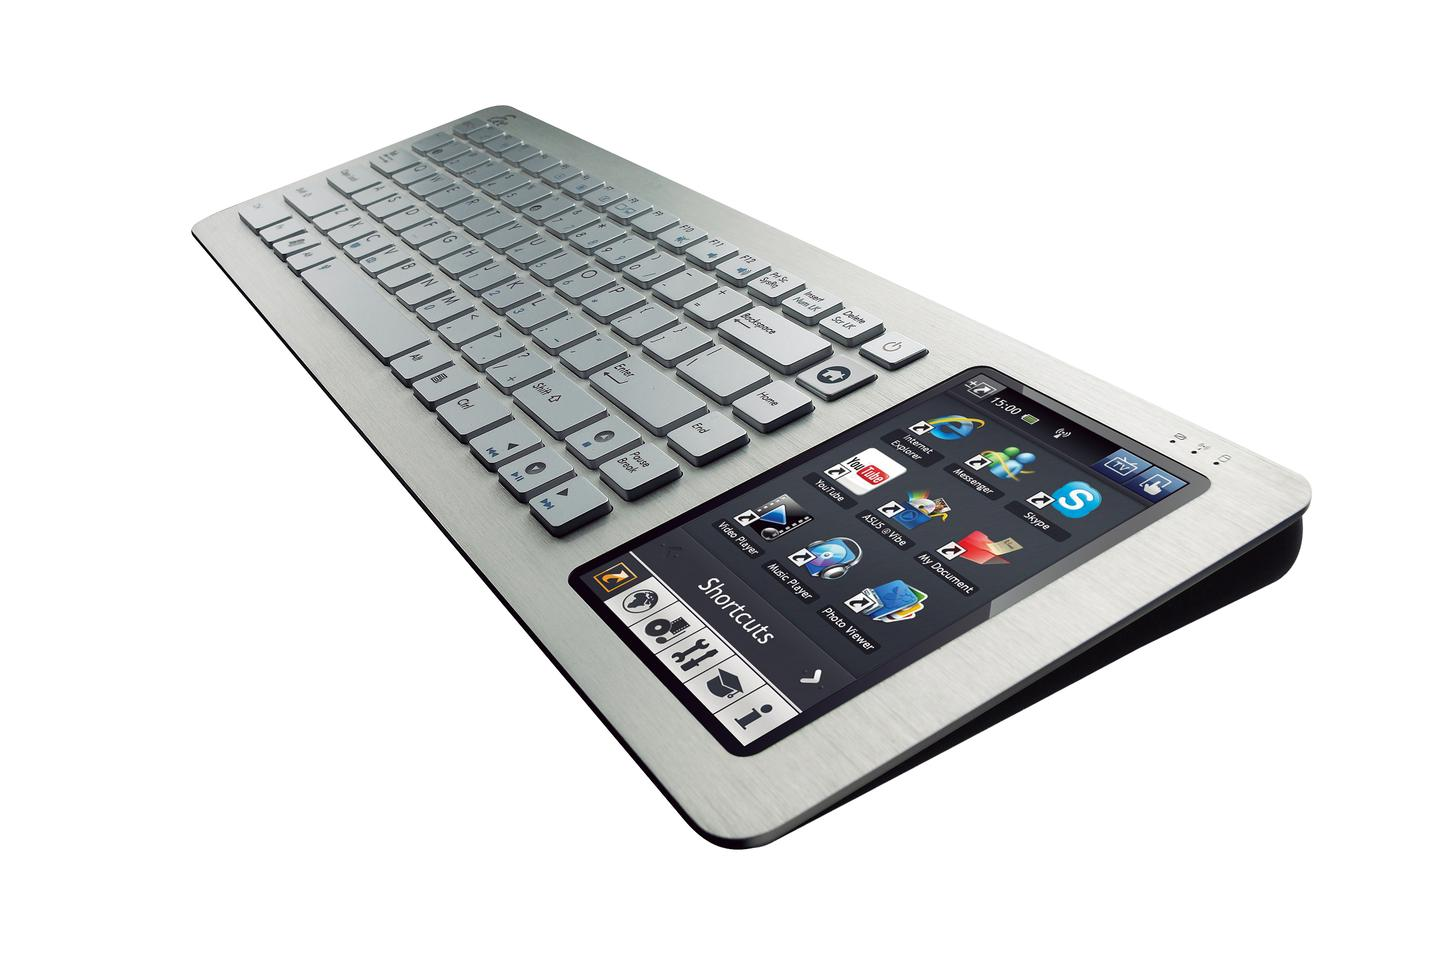 ASUS' Eee keyboard pc combines all the functionality of a netbook with a wireless keyboard